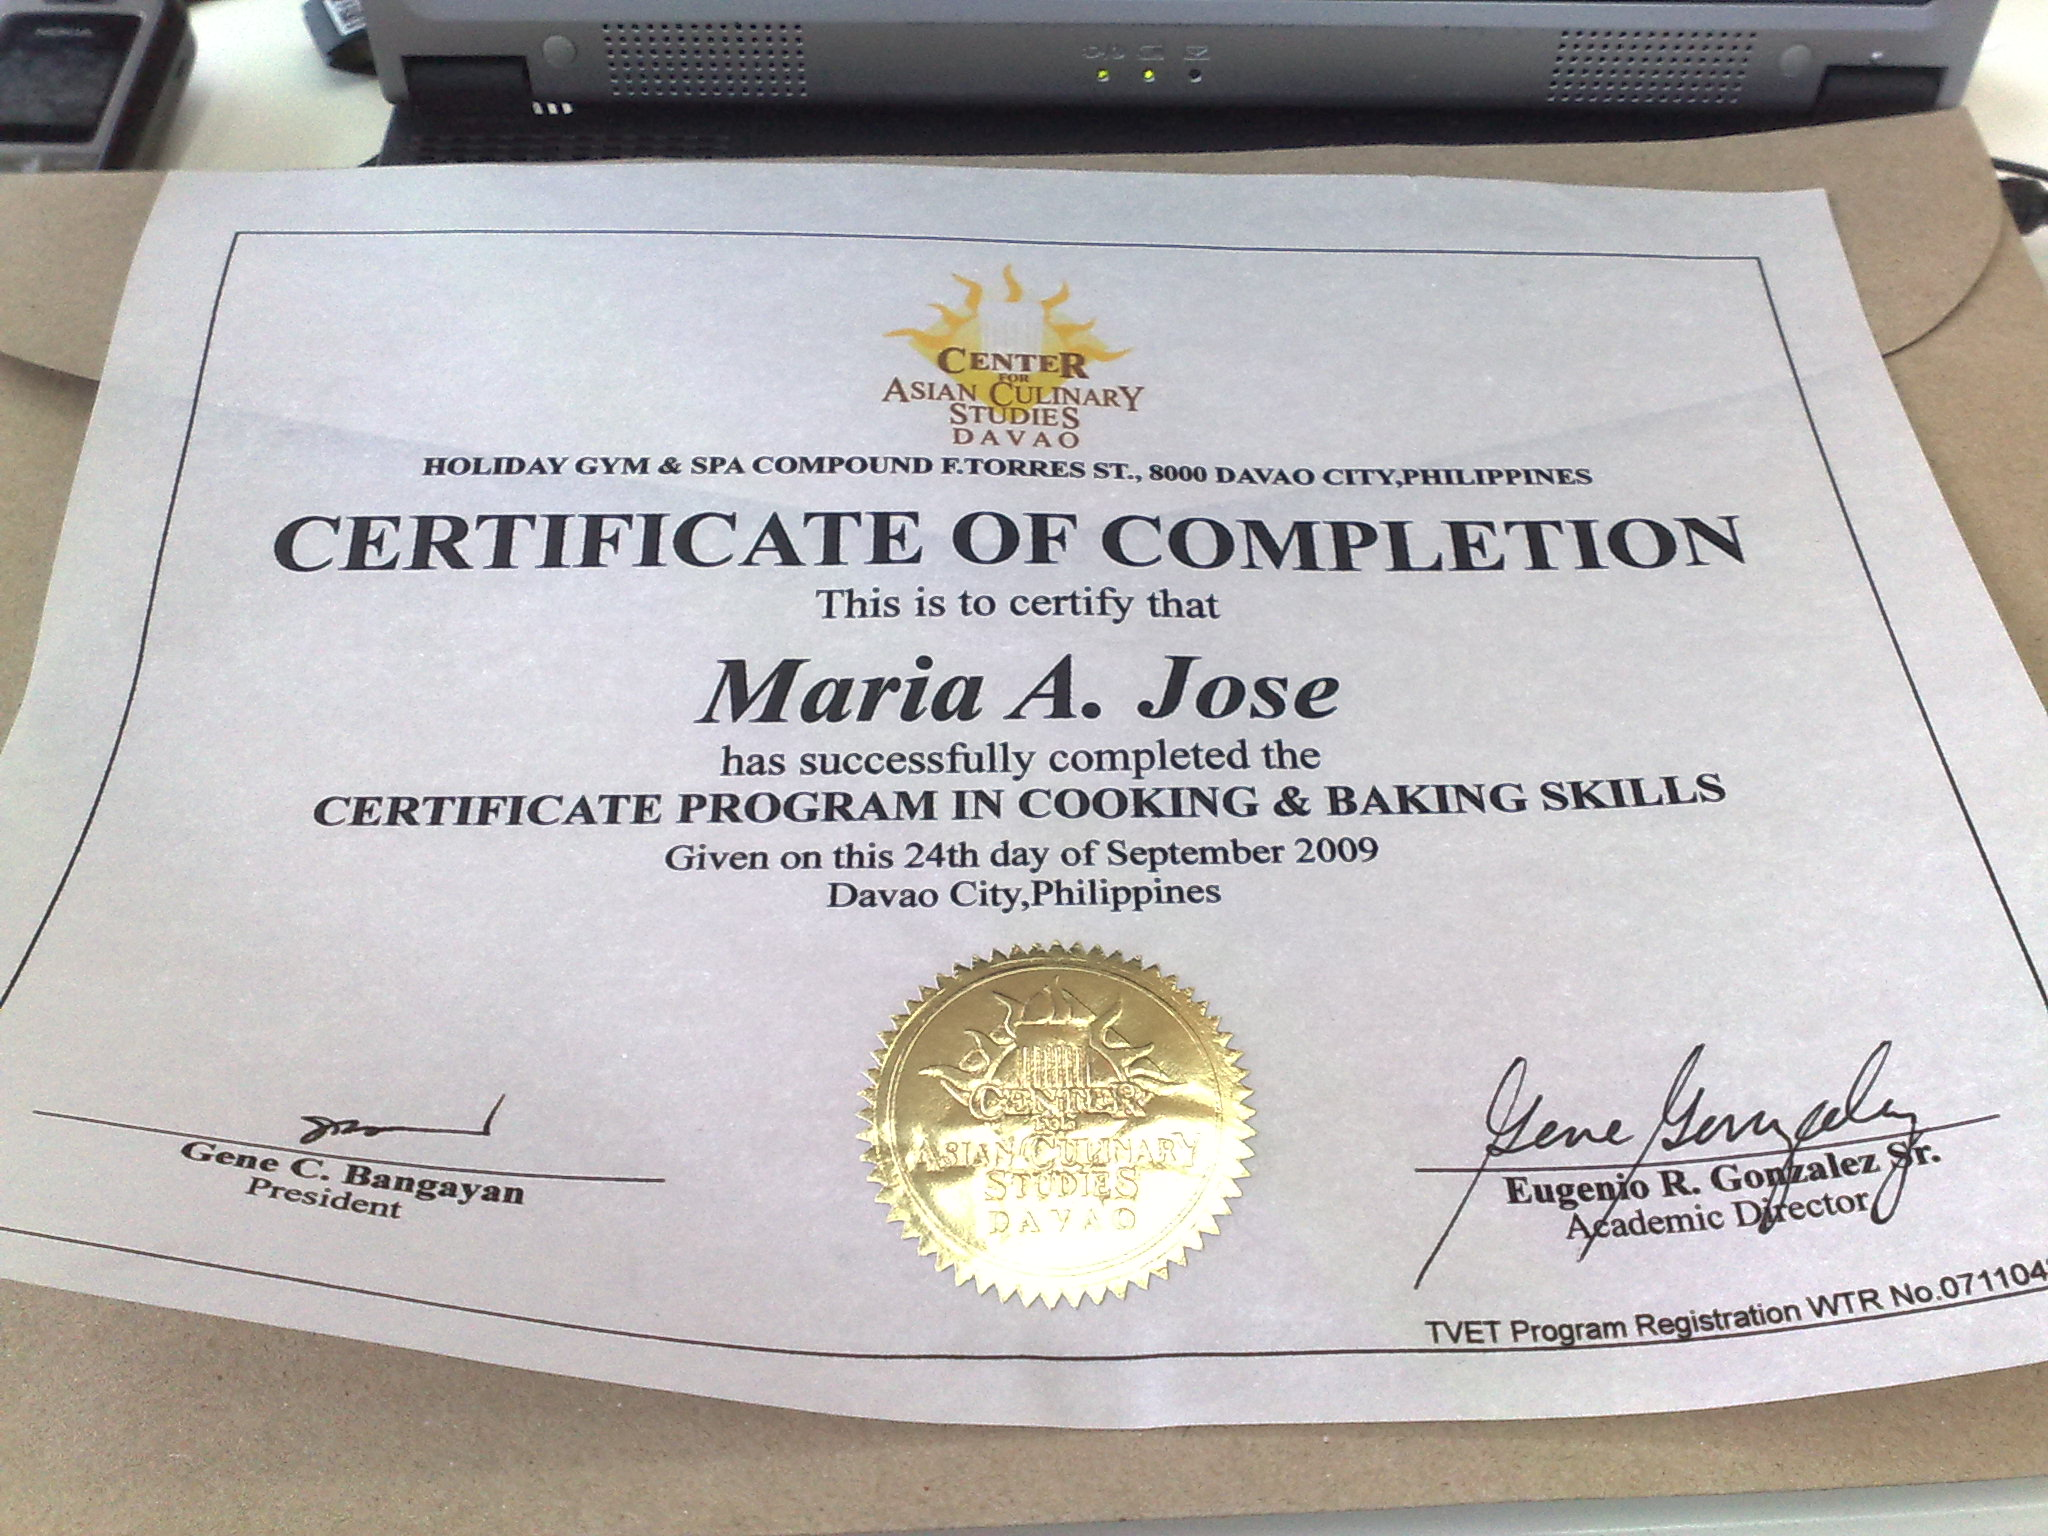 Cacs Basic Skills In Cooking And Baking Program Graduate Kusina